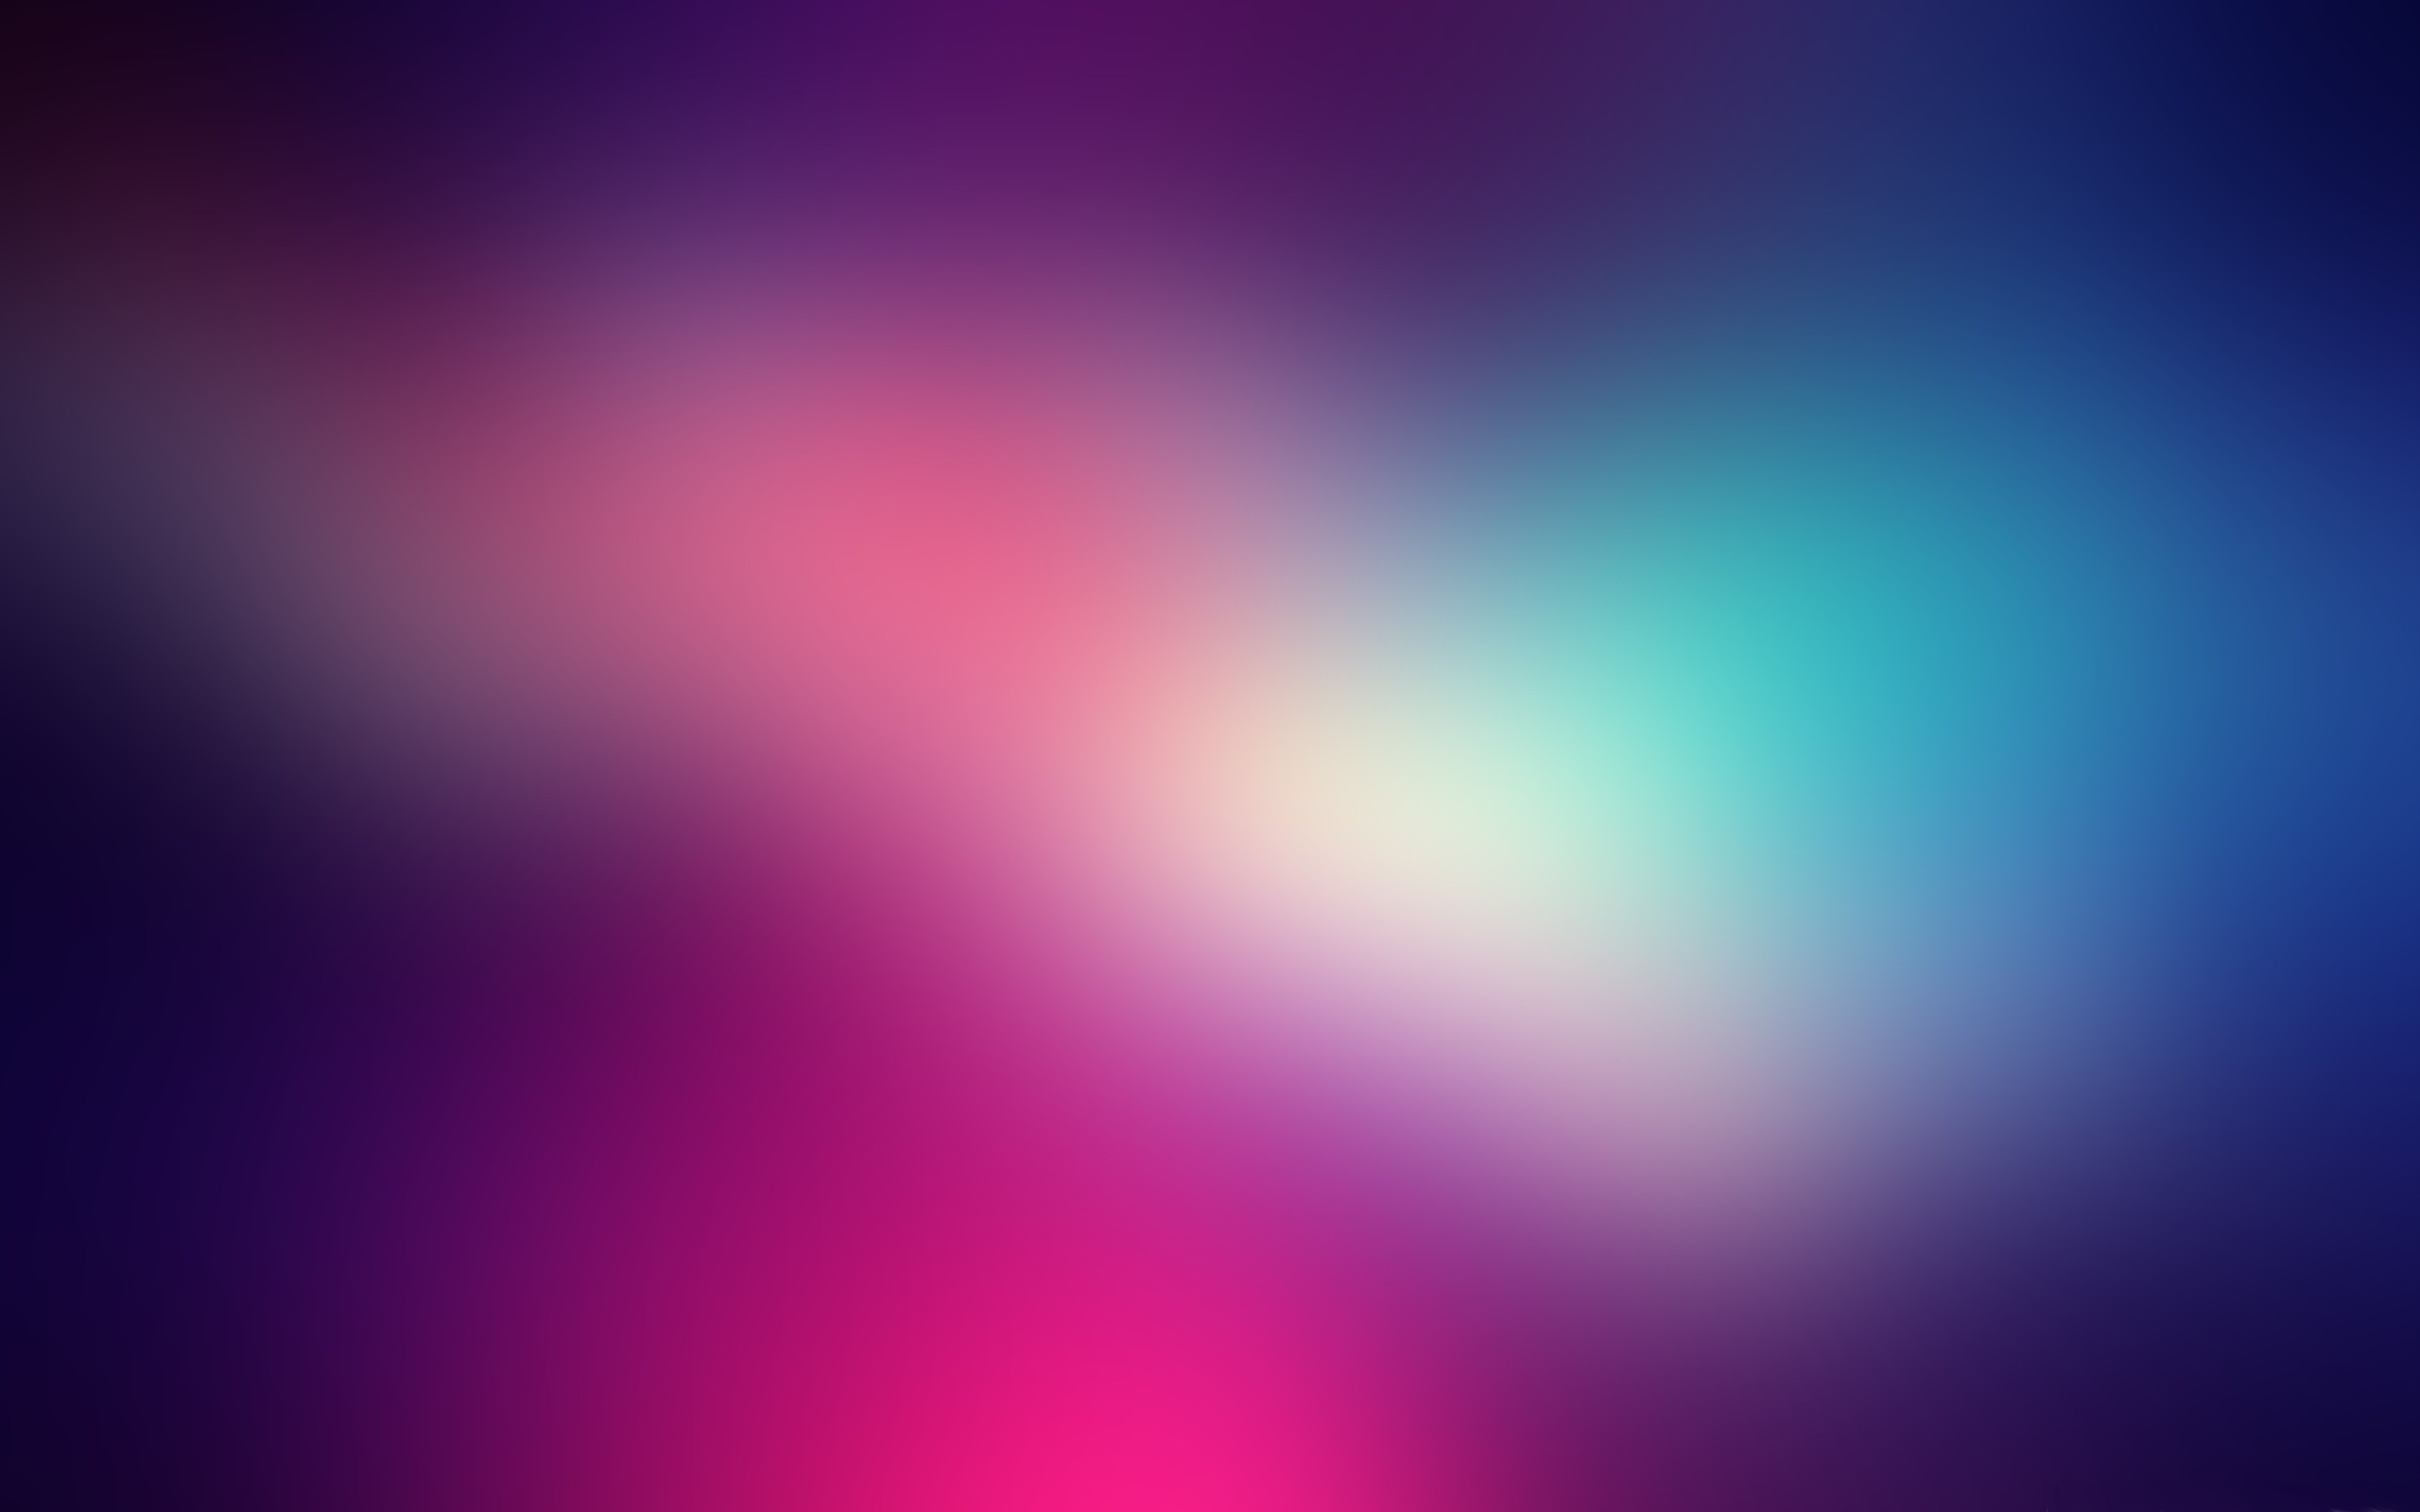 Ios 7 Wallpaper Hd: Purple Wallpapers Ios Hd Wallpaper Gadget Tech and Blue 2560x1600px